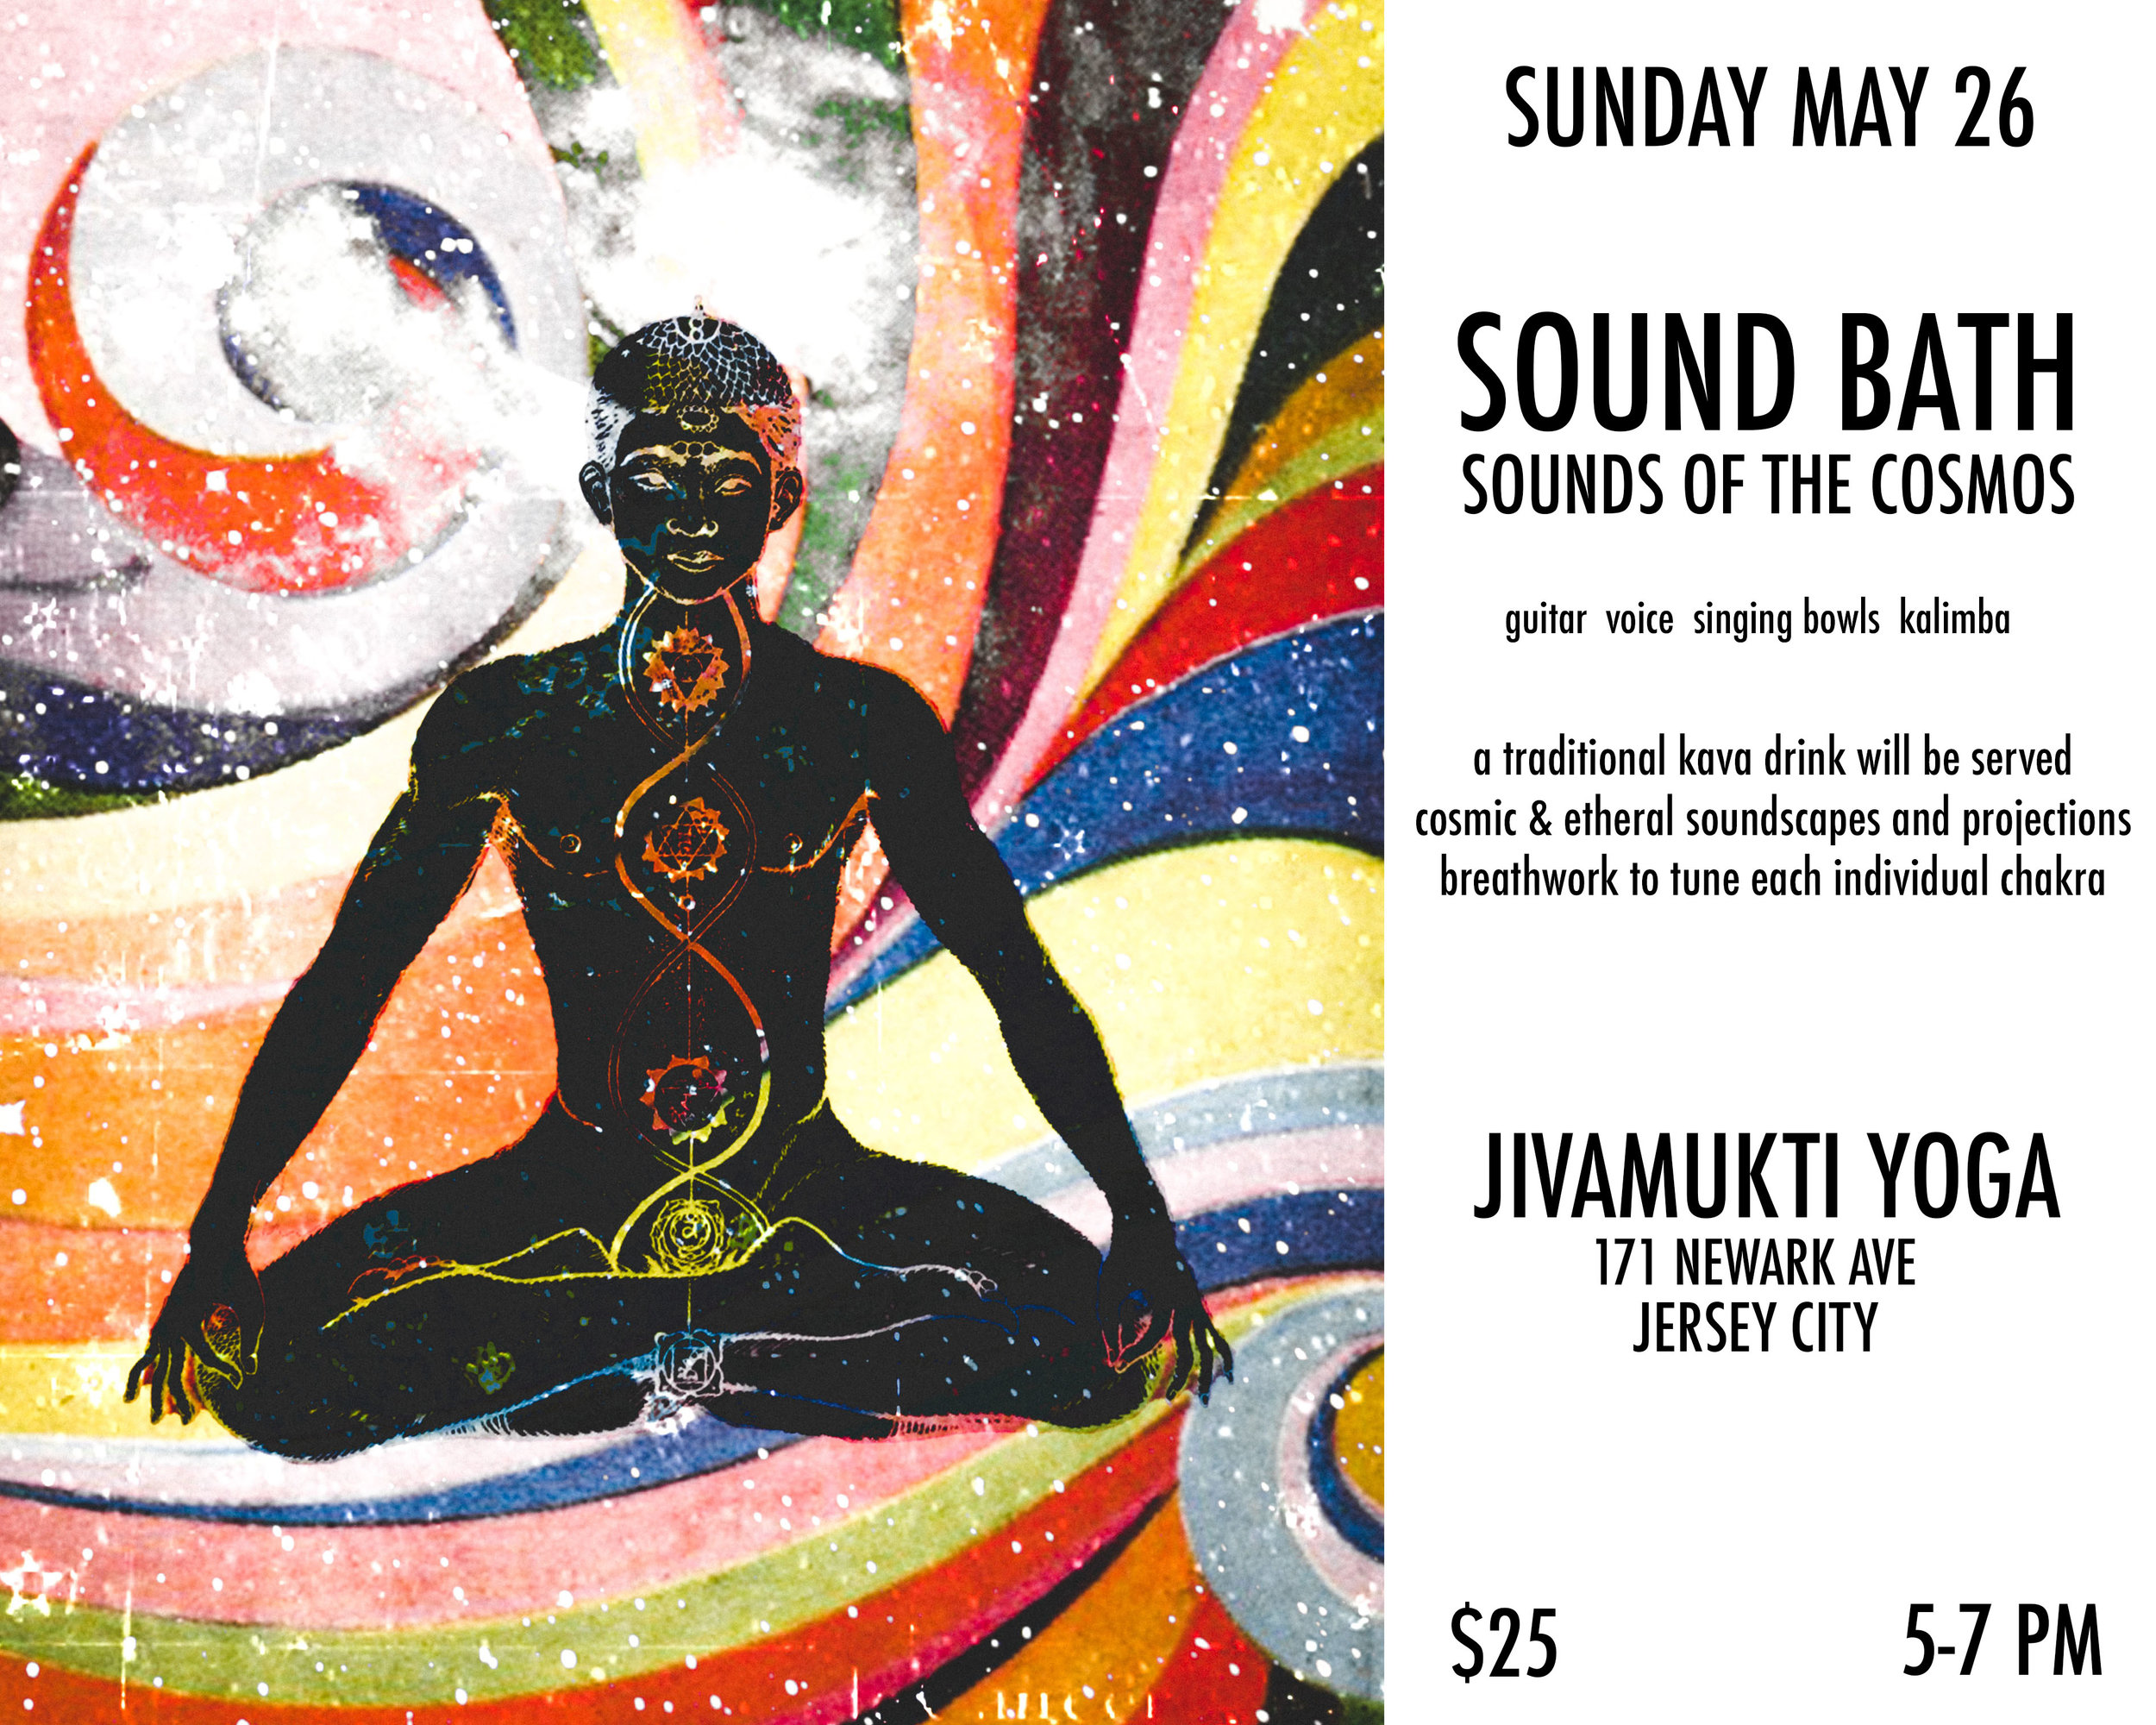 Sound Bath at Jivamukti Yoga in Jersey City